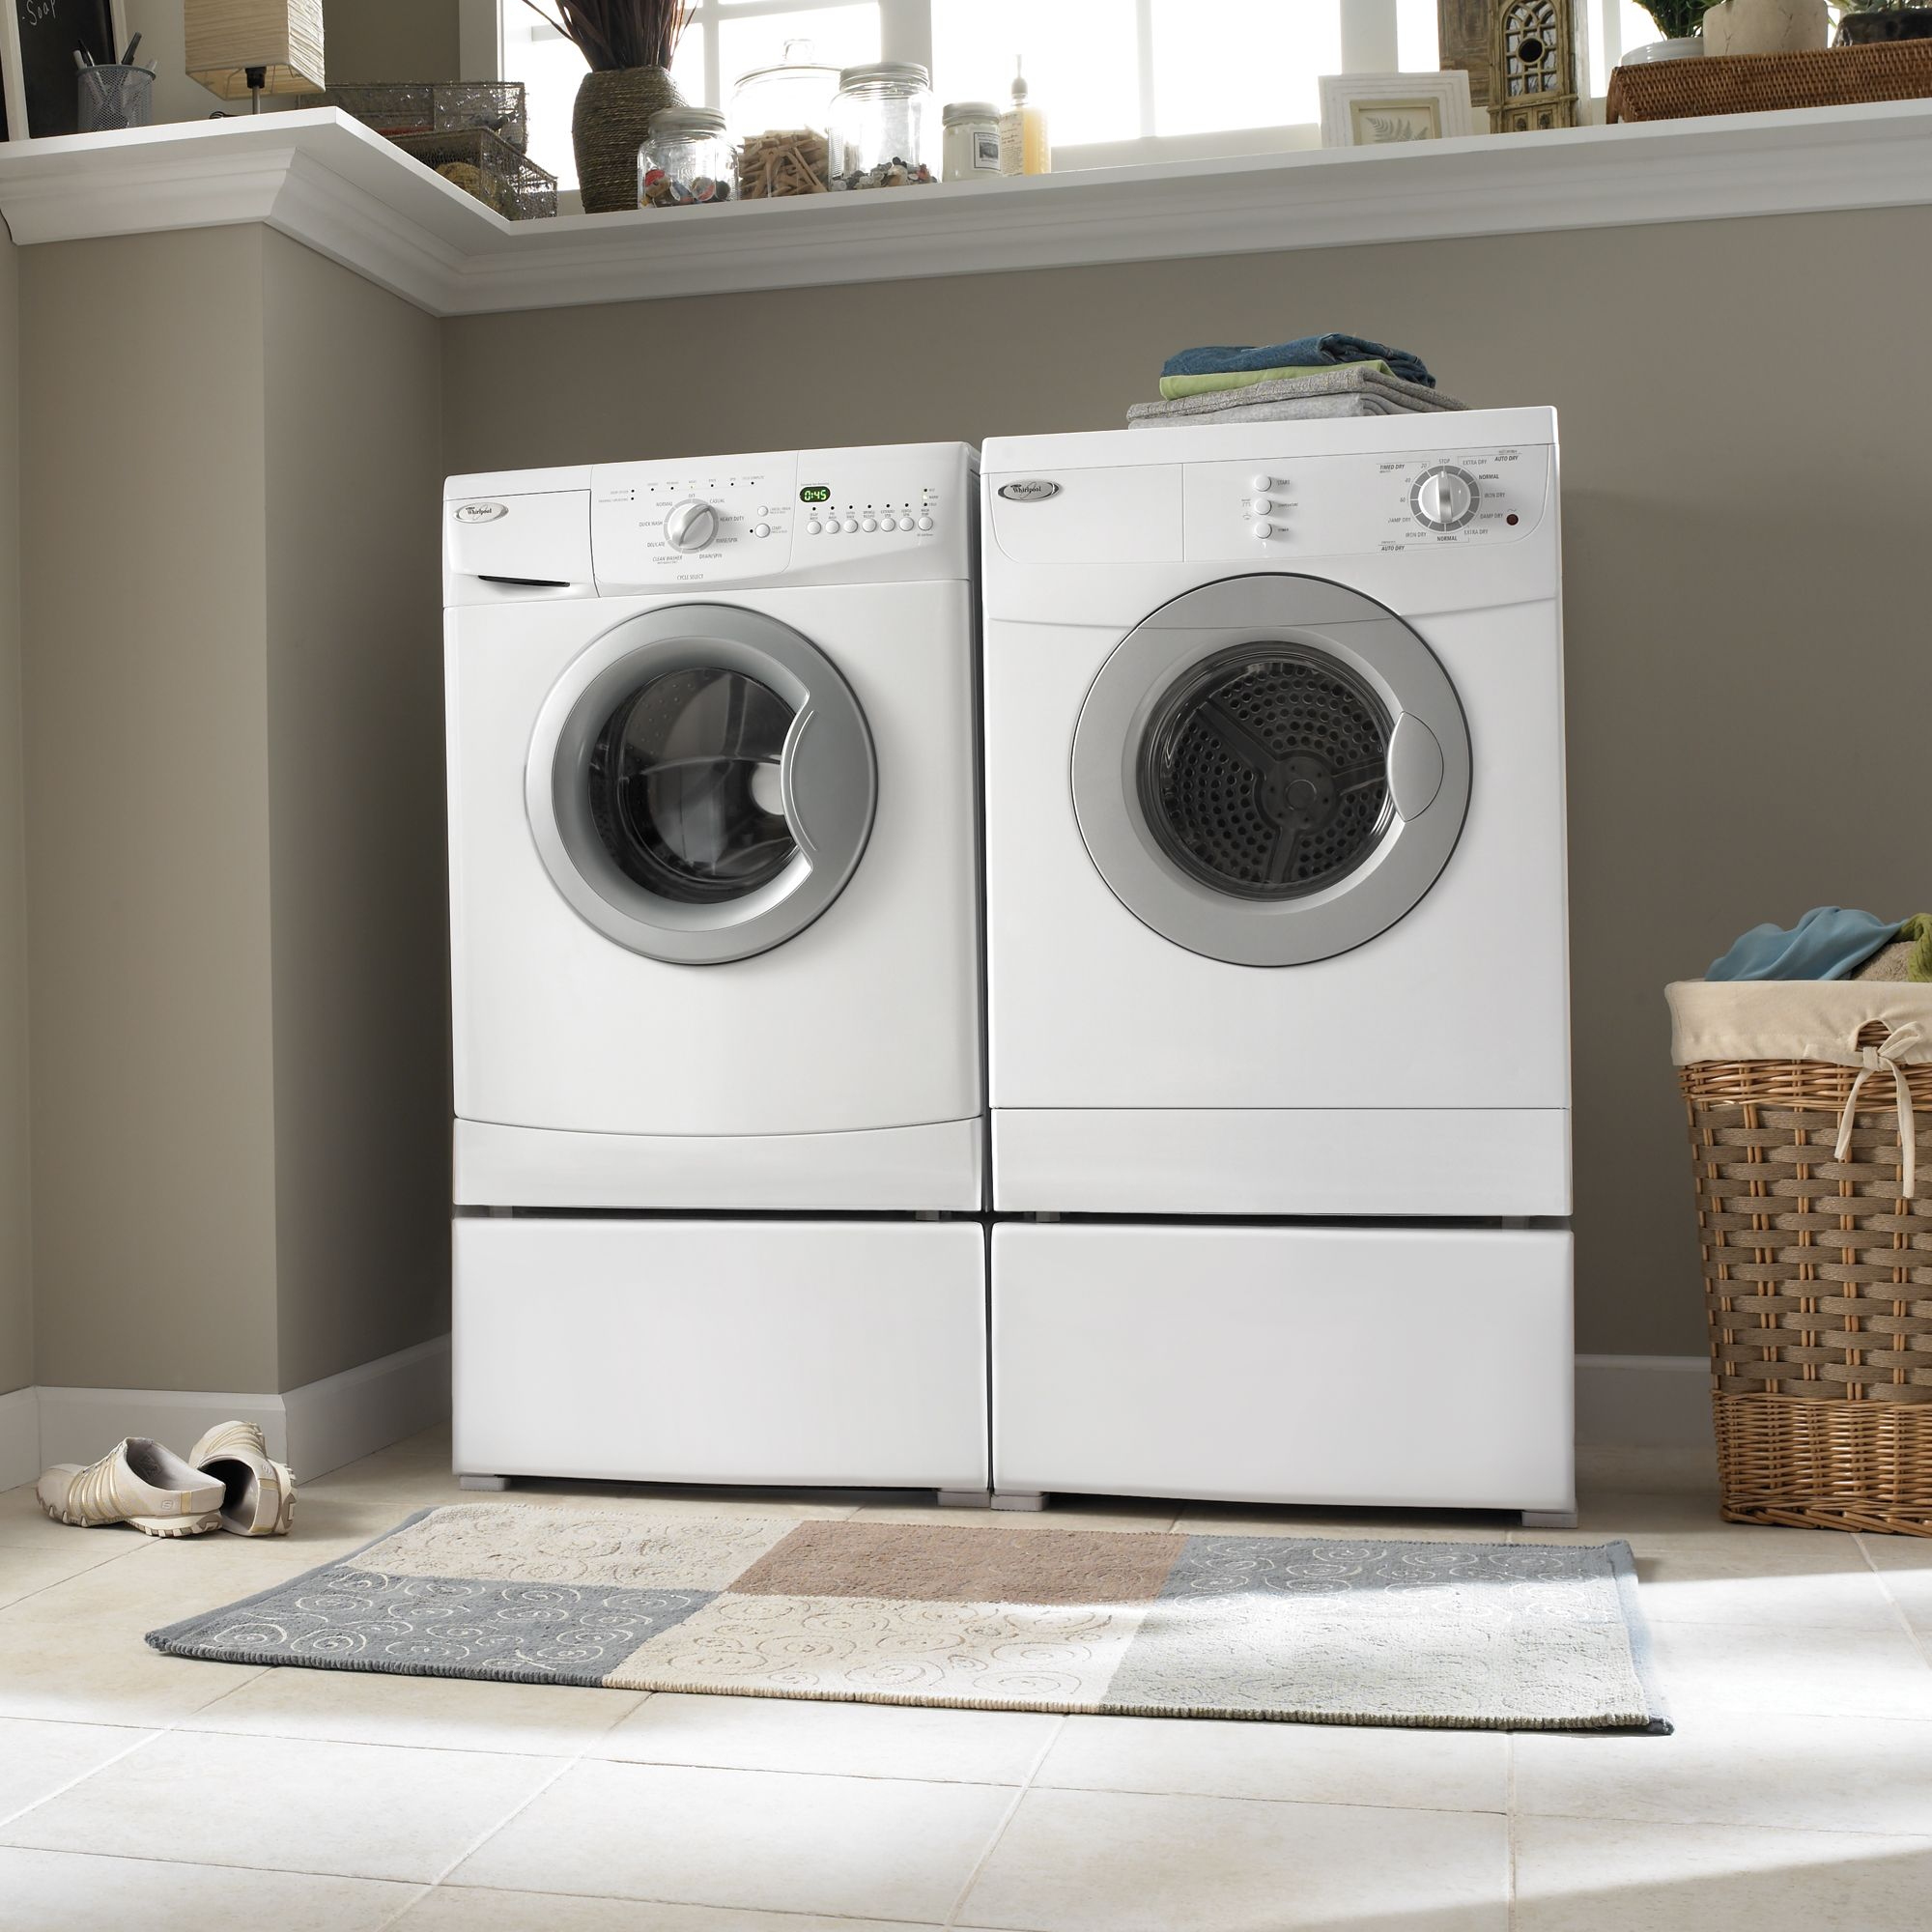 Whirlpool 3.8 cu. ft. Electric Compact Dryer